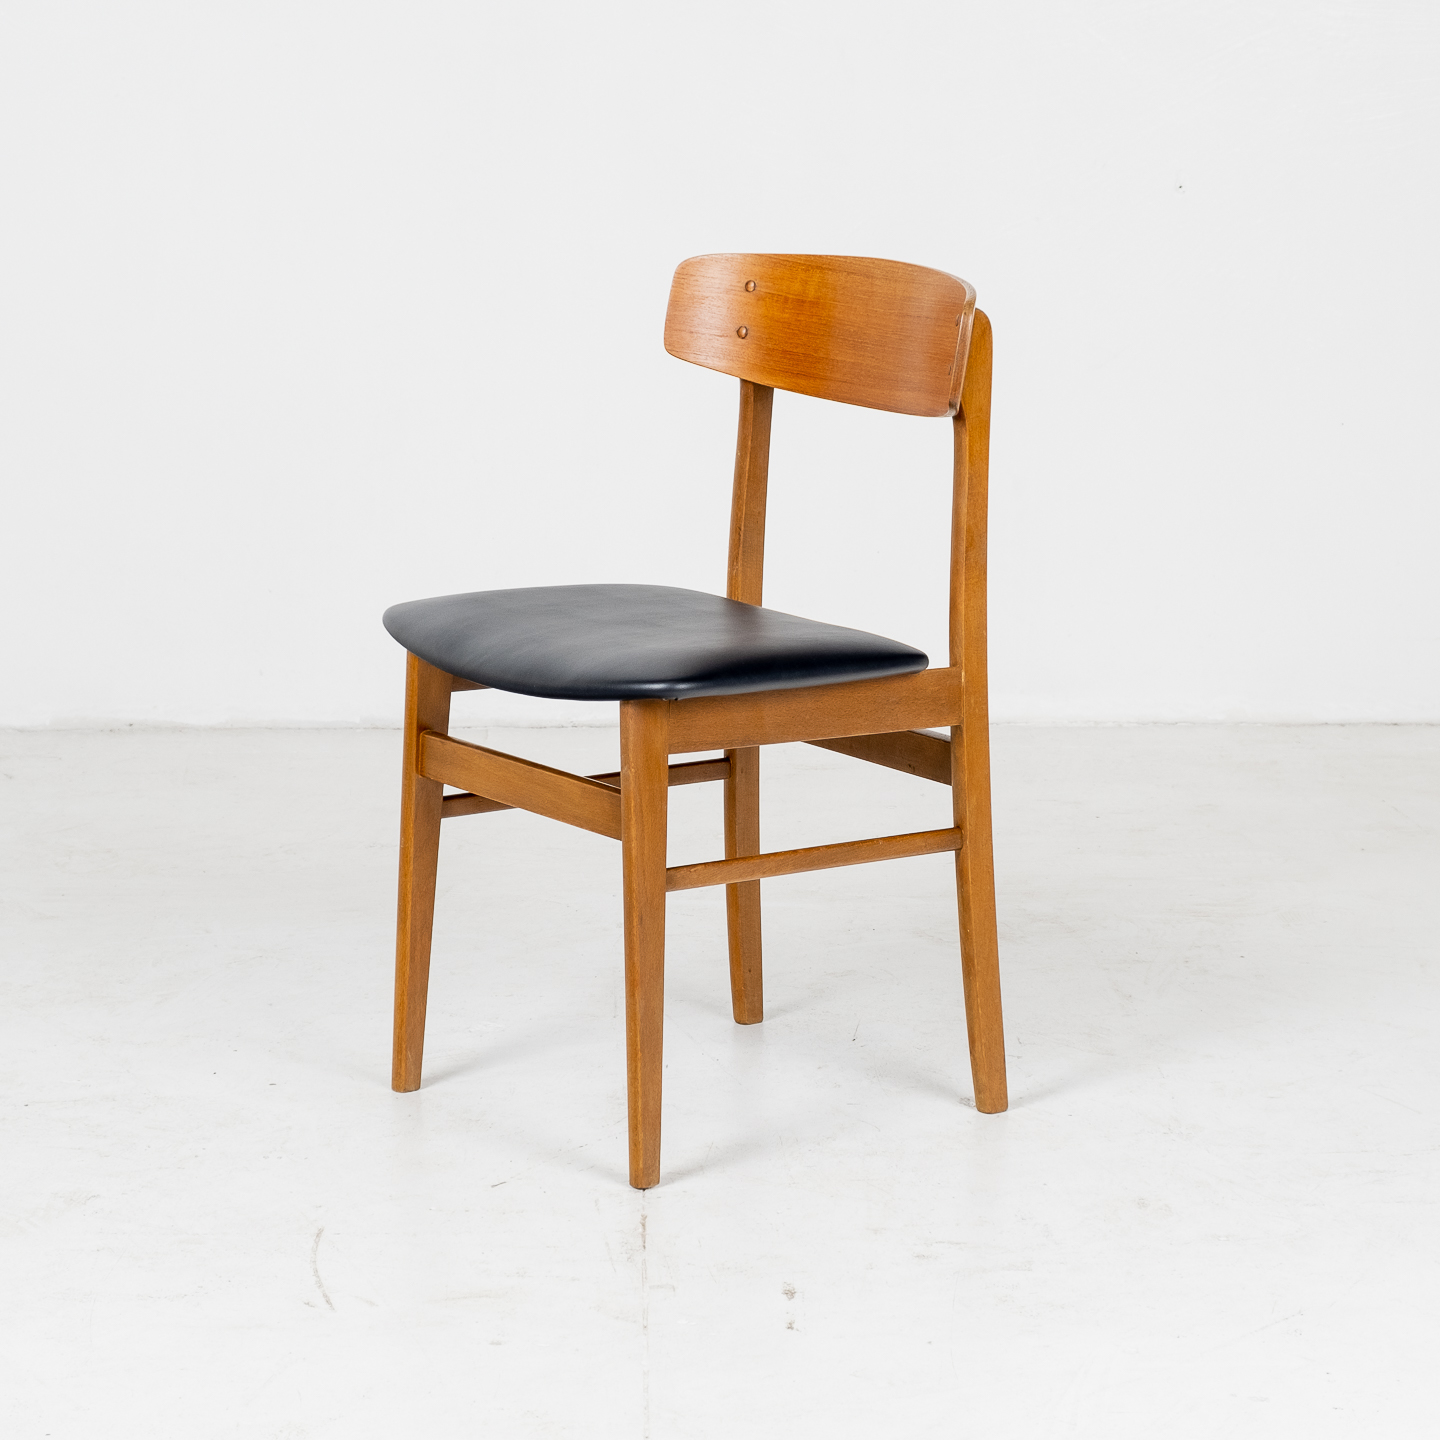 Set Of Four Square Back Dining Chairs By Fastrup In Teak, 1960s, Denmark02